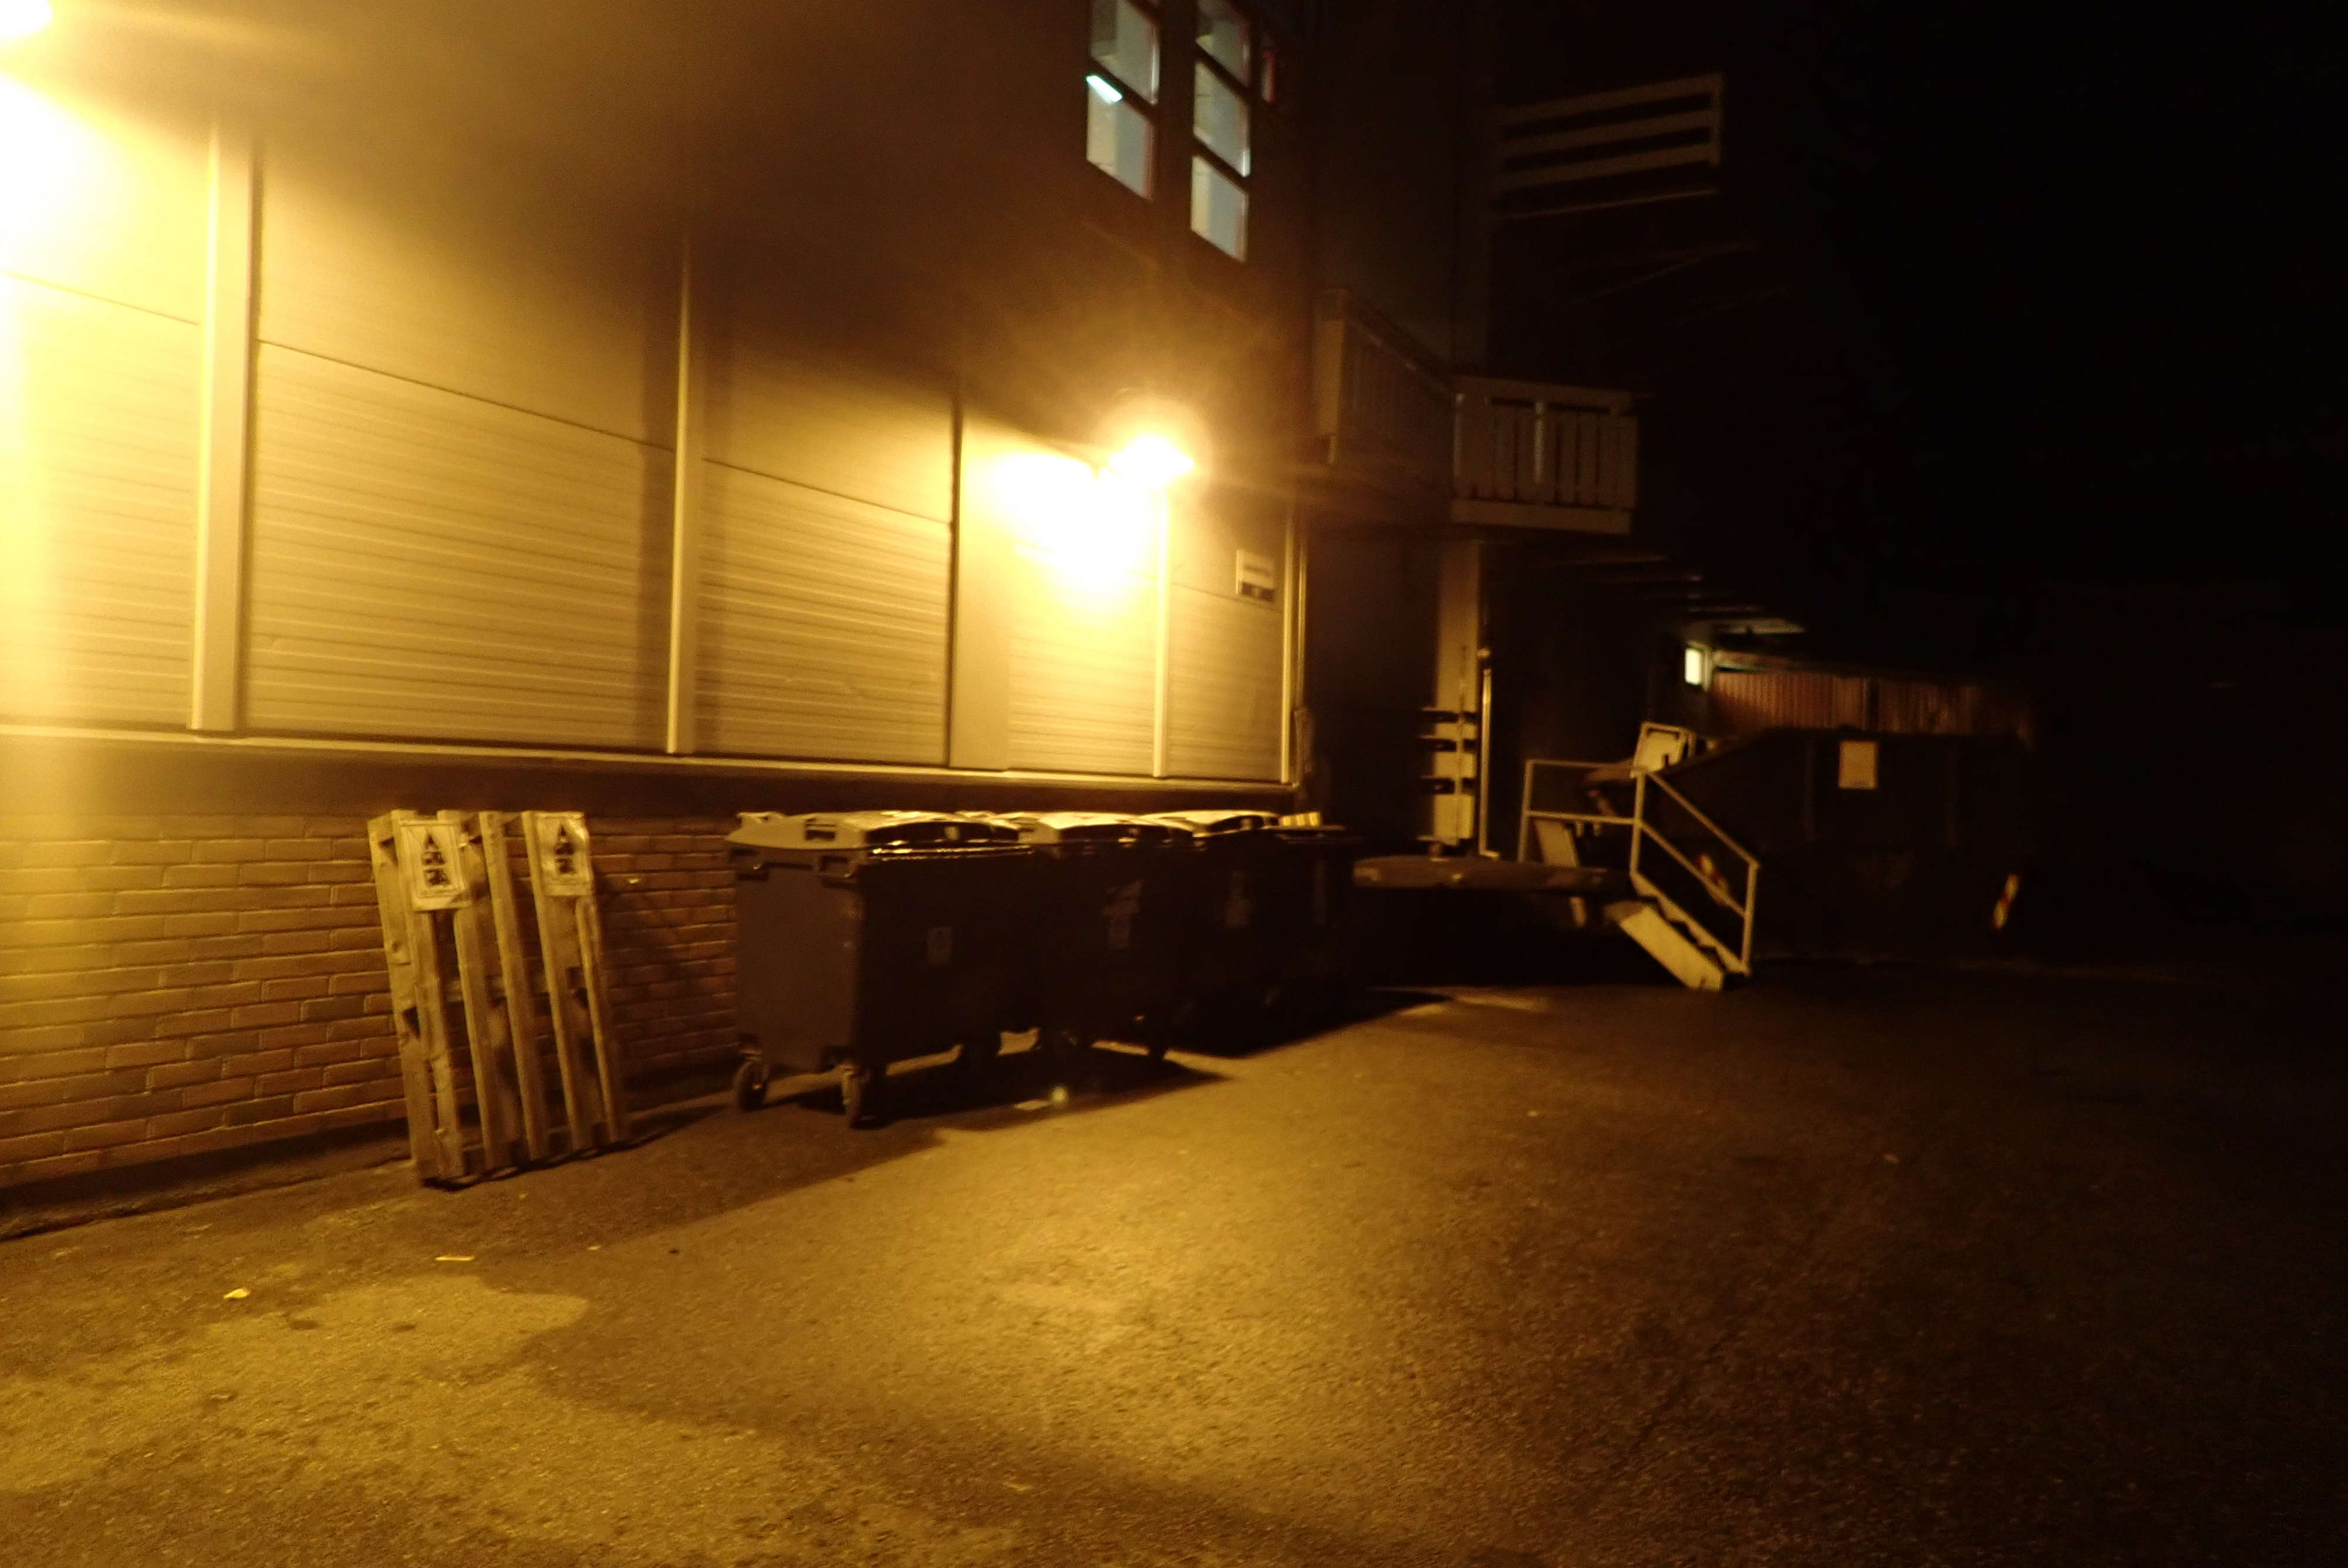 dumpsters at the back of a shop in the dark